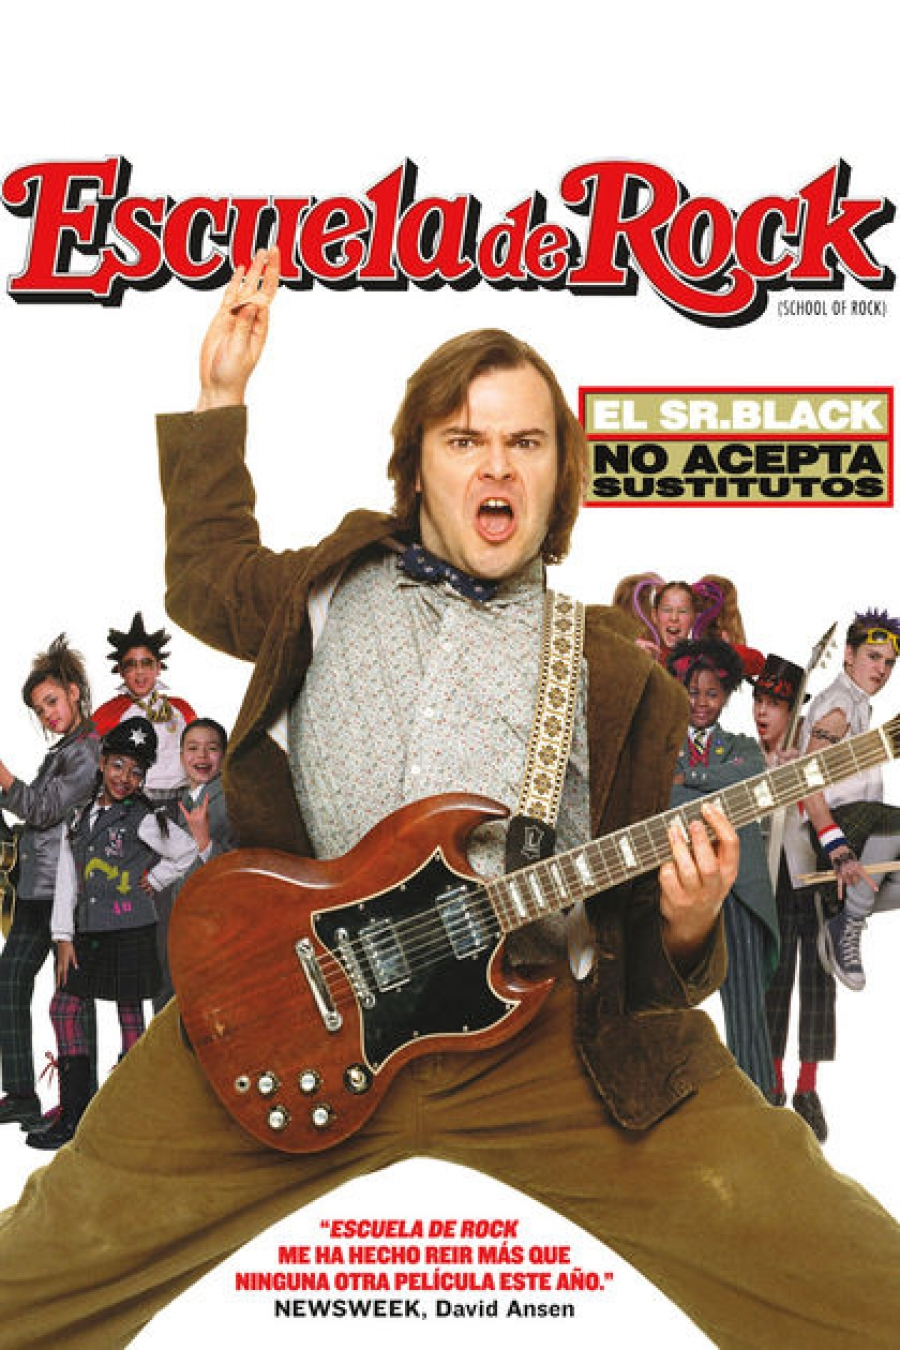 TSchool of Rock